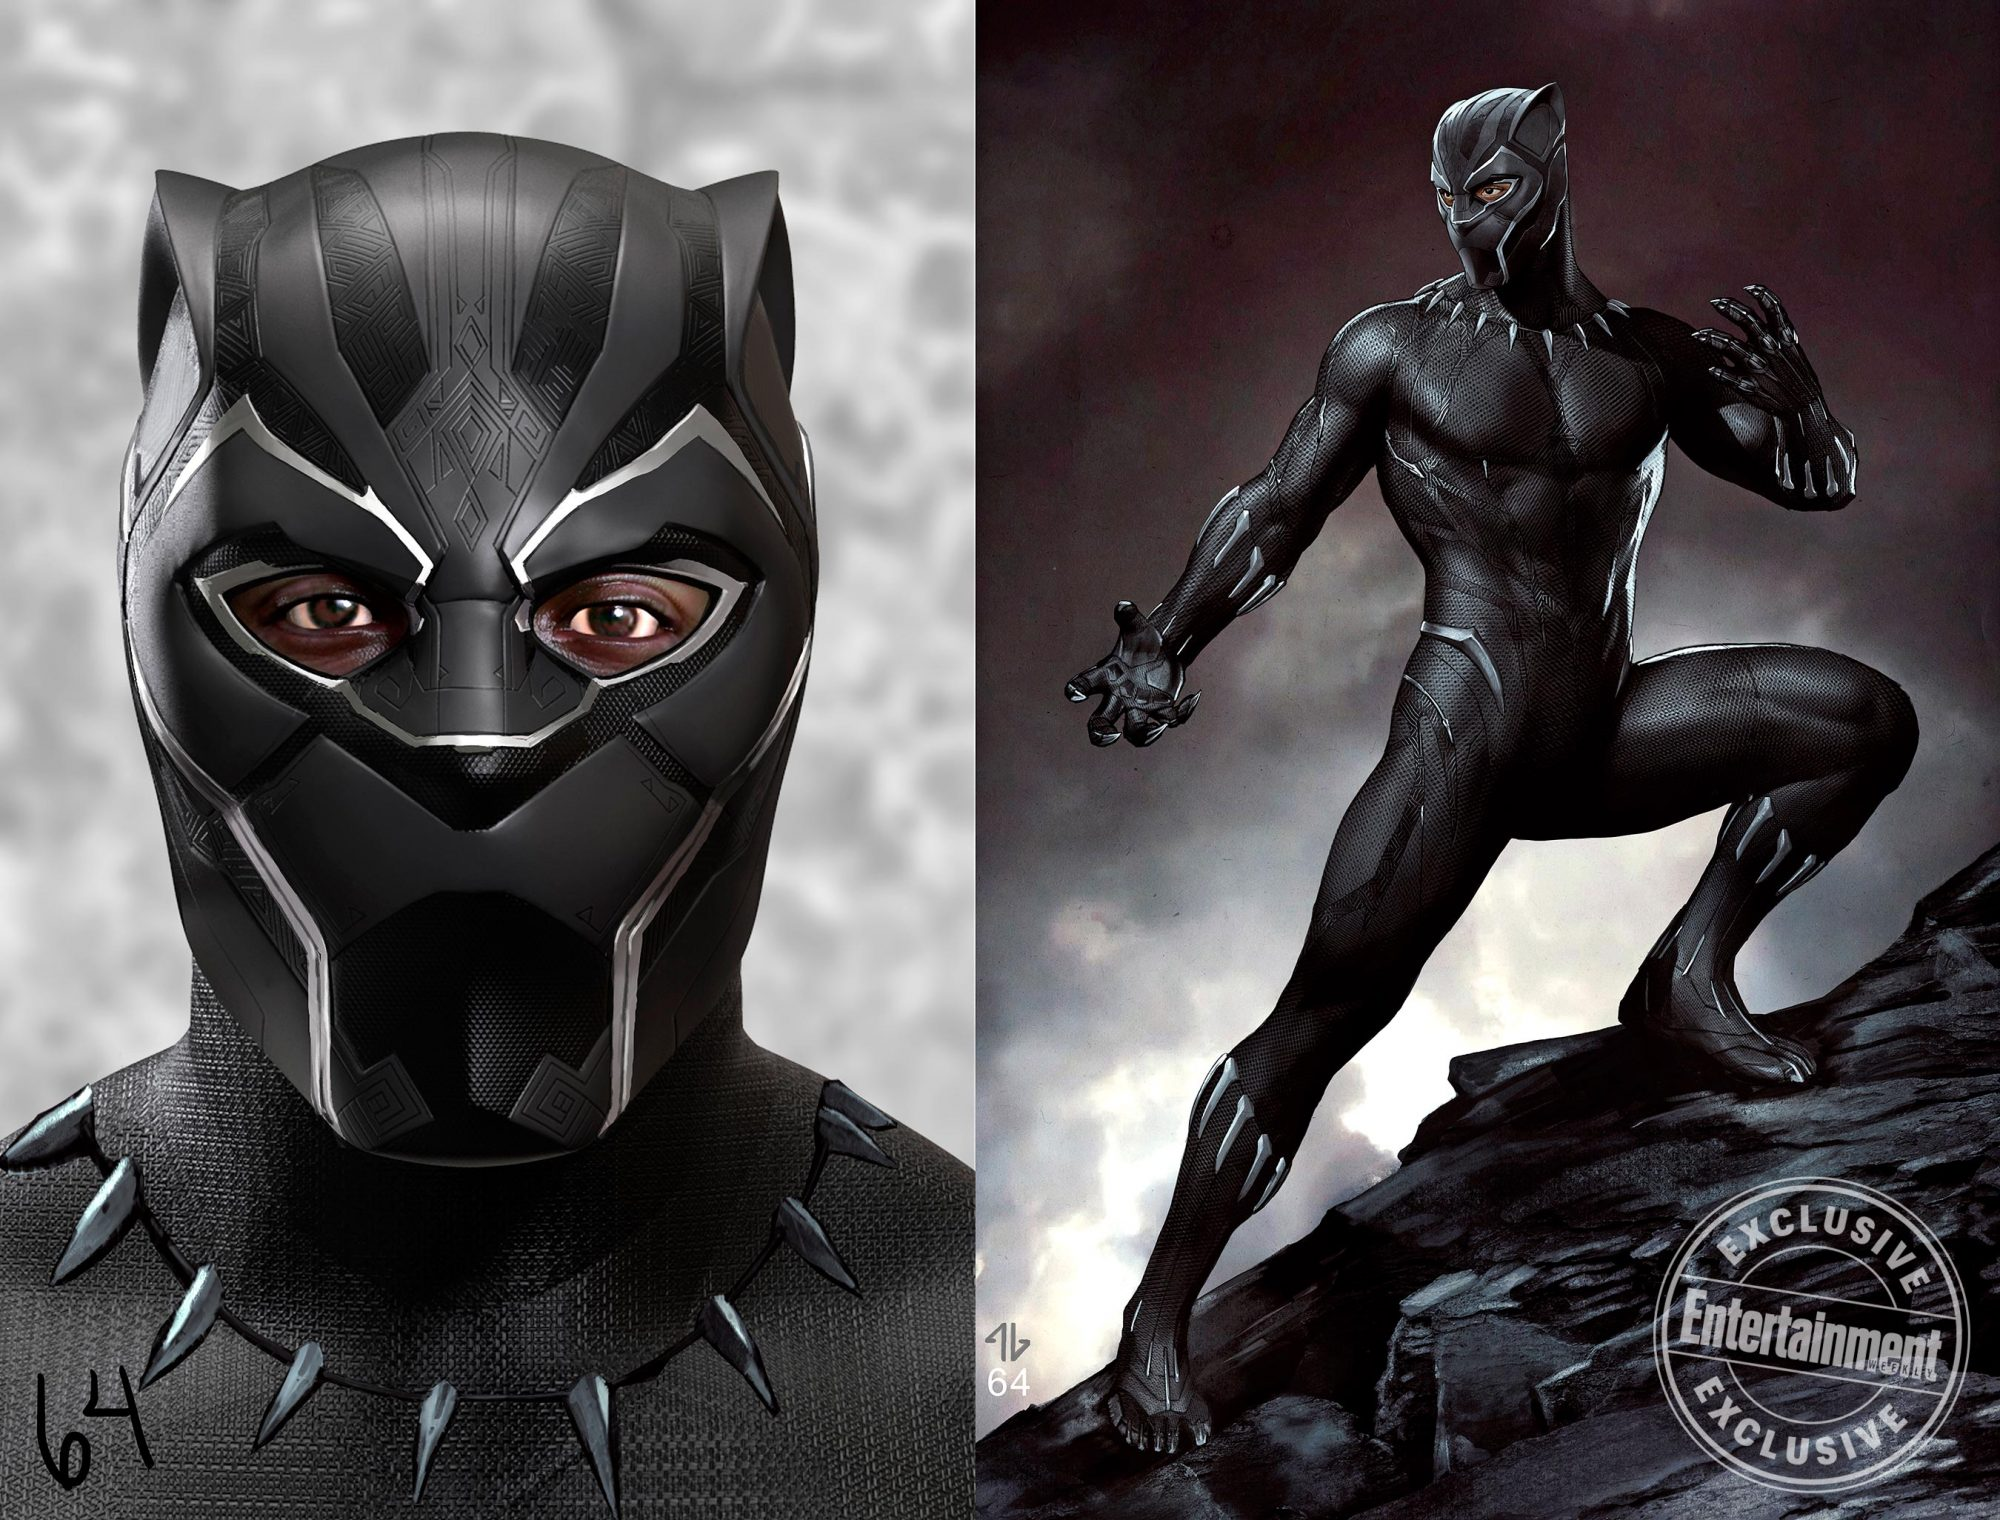 ML_BlackPanther_64_AGranov_.JPG